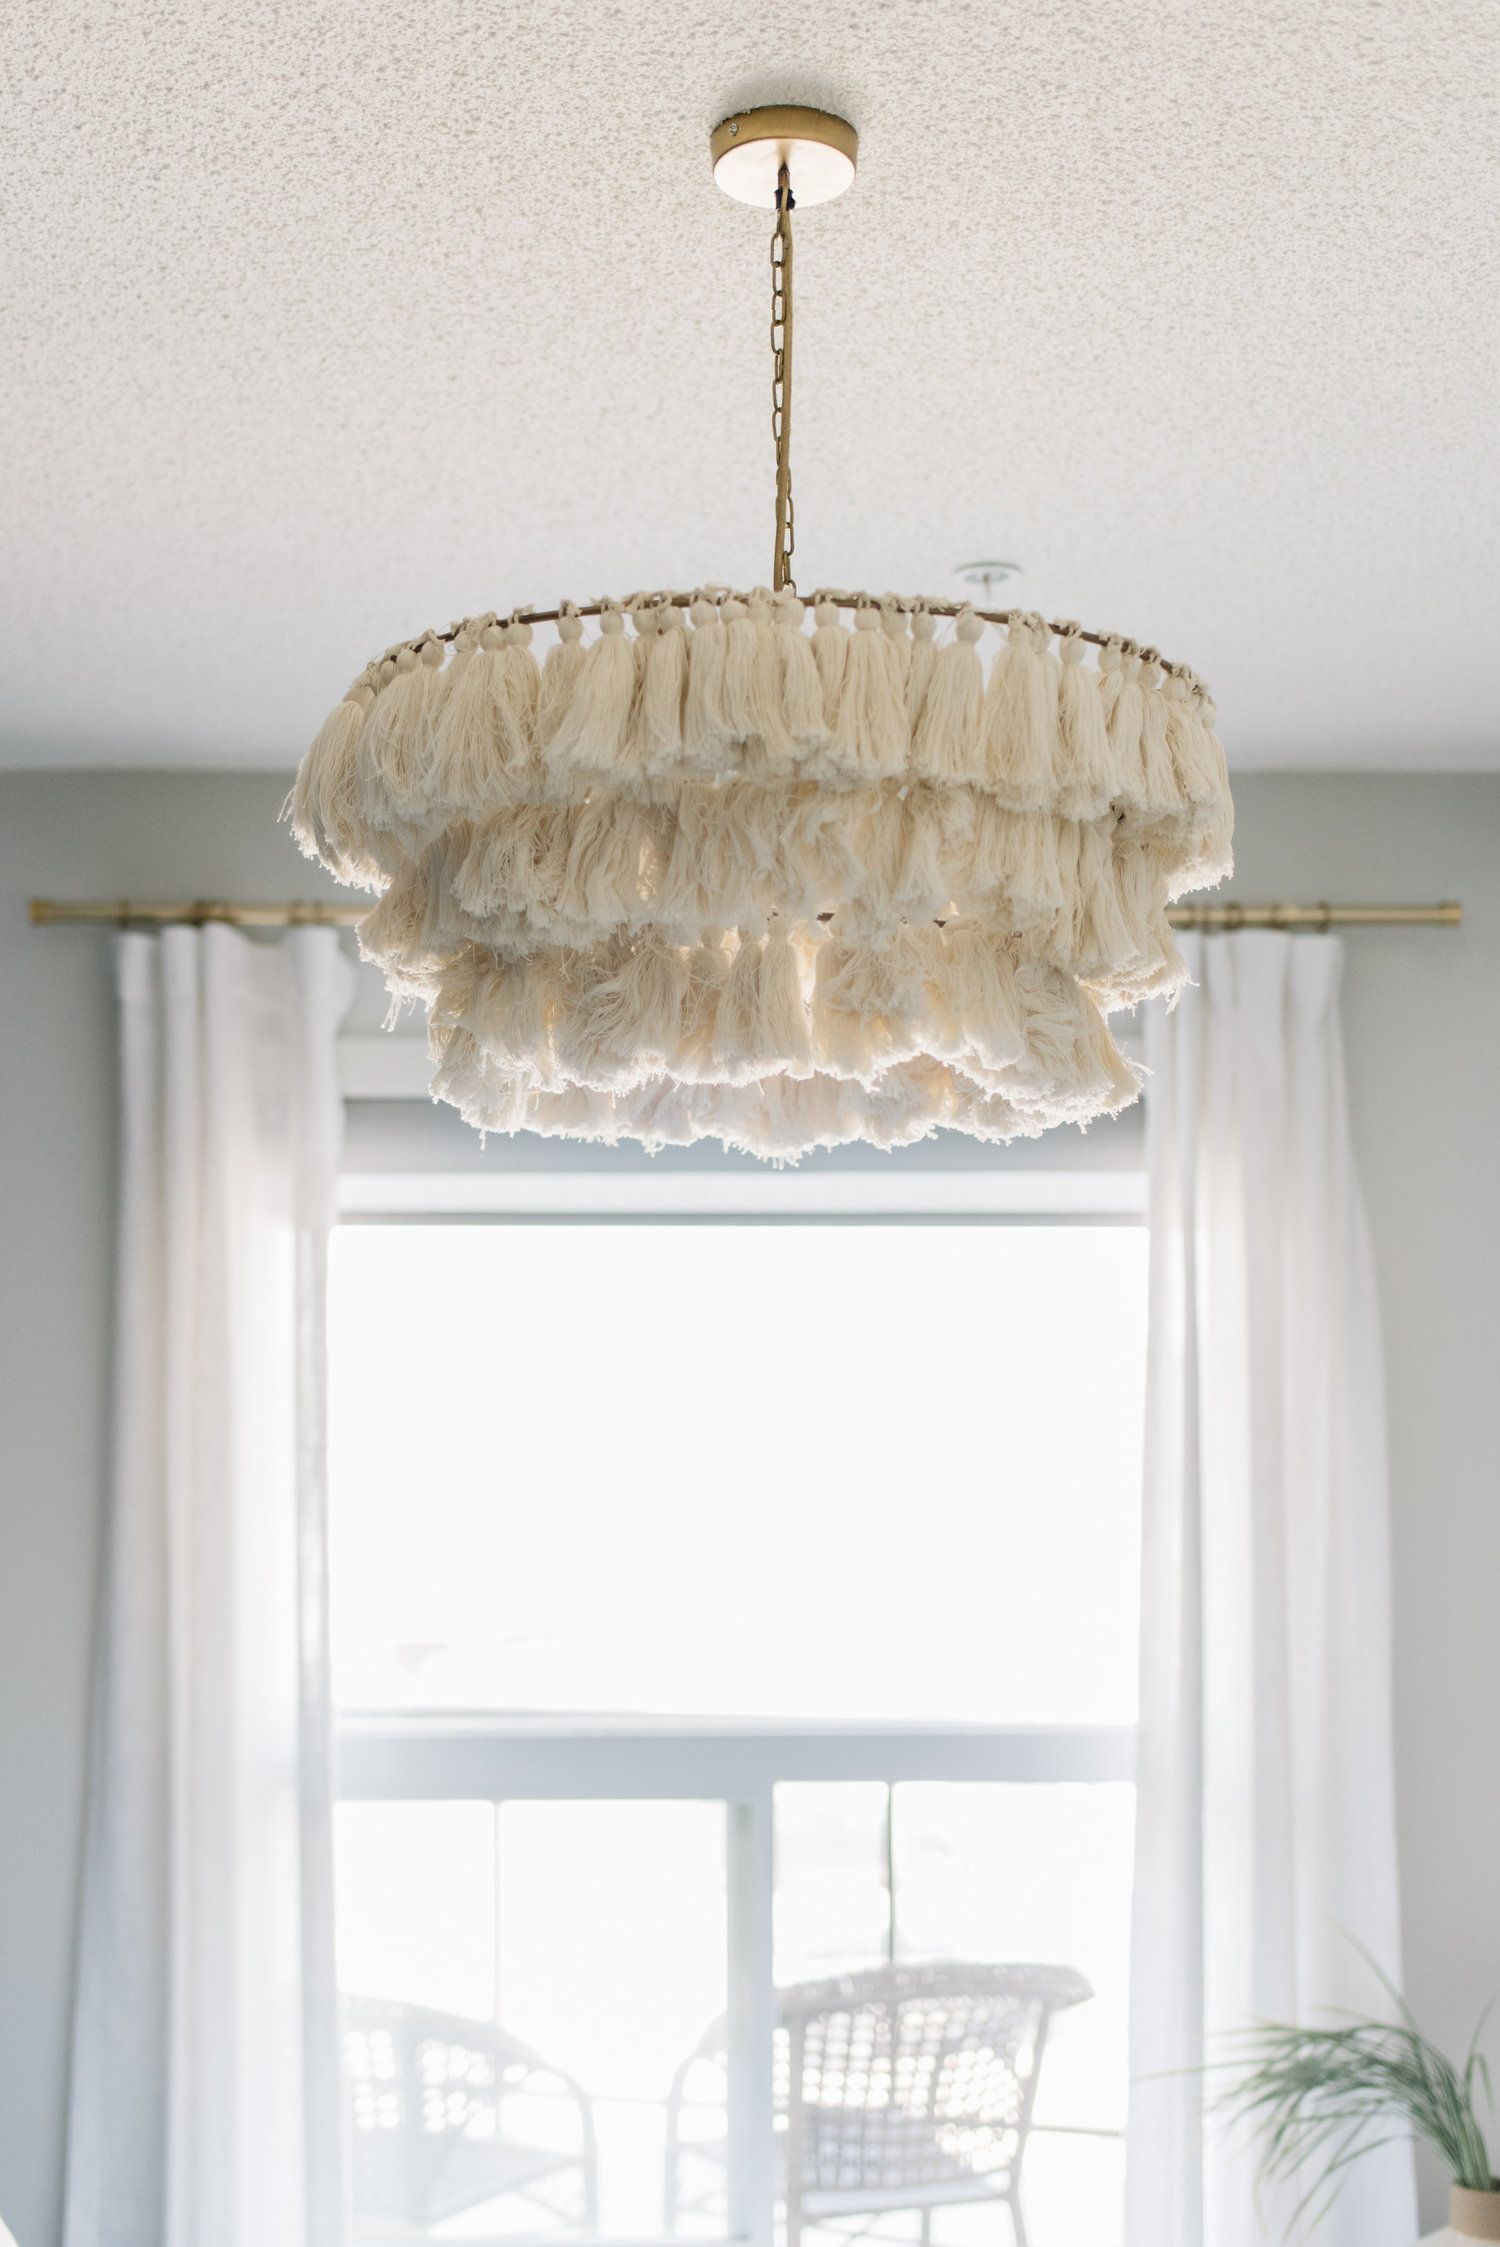 Mirya Ceiling Light Bedroom Light Fixtures Bedroom Ceiling Light Light Fixtures Bedroom Ceiling